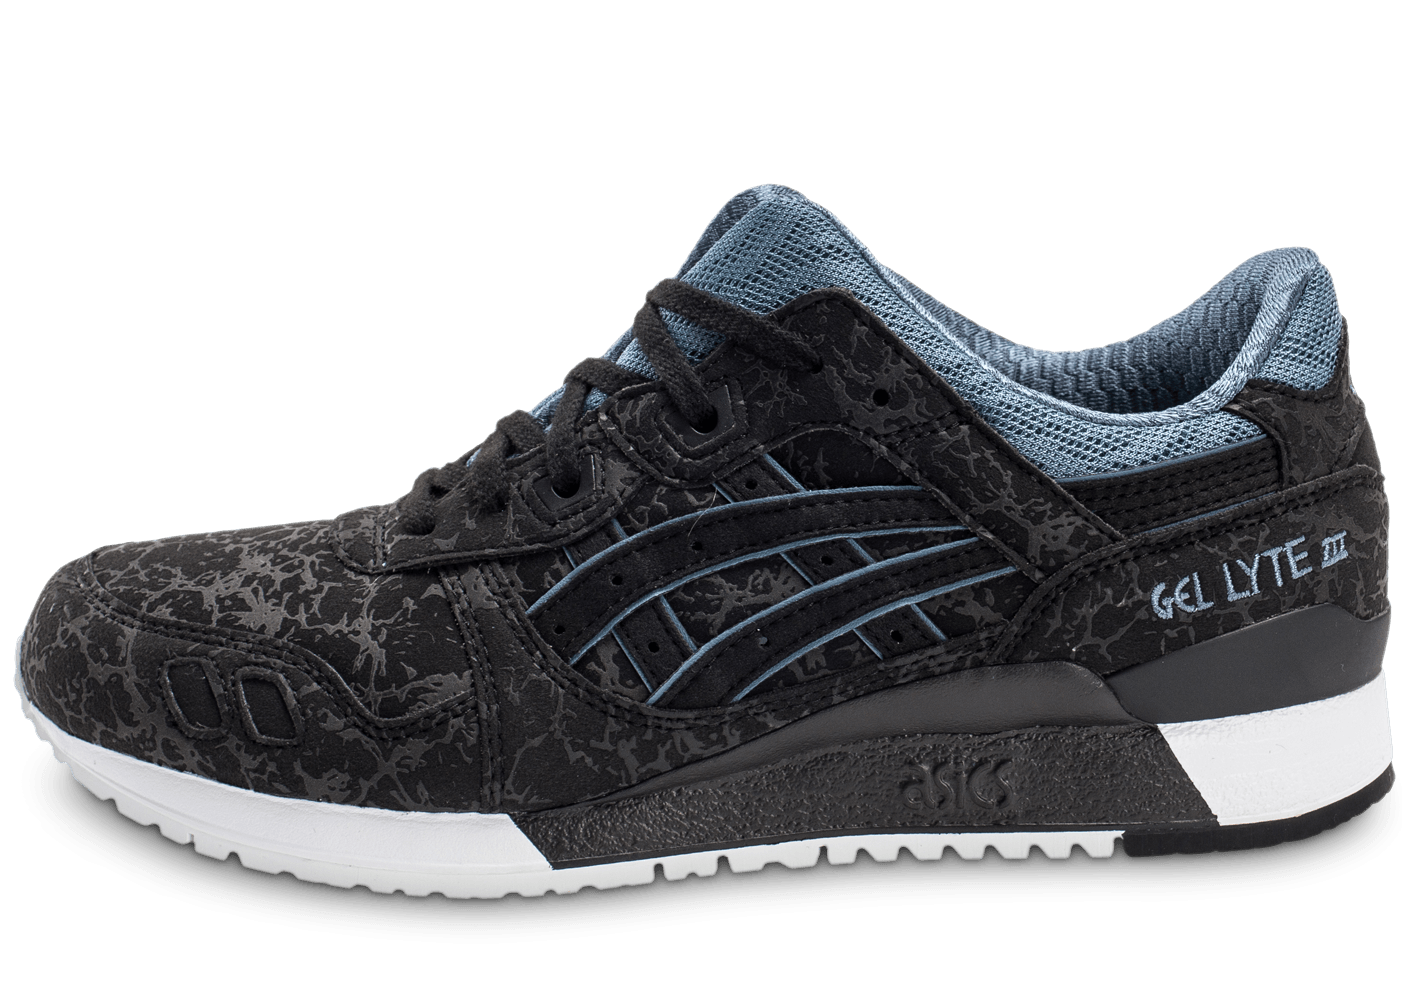 asics gel lyte 3 noir et bleu. Black Bedroom Furniture Sets. Home Design Ideas